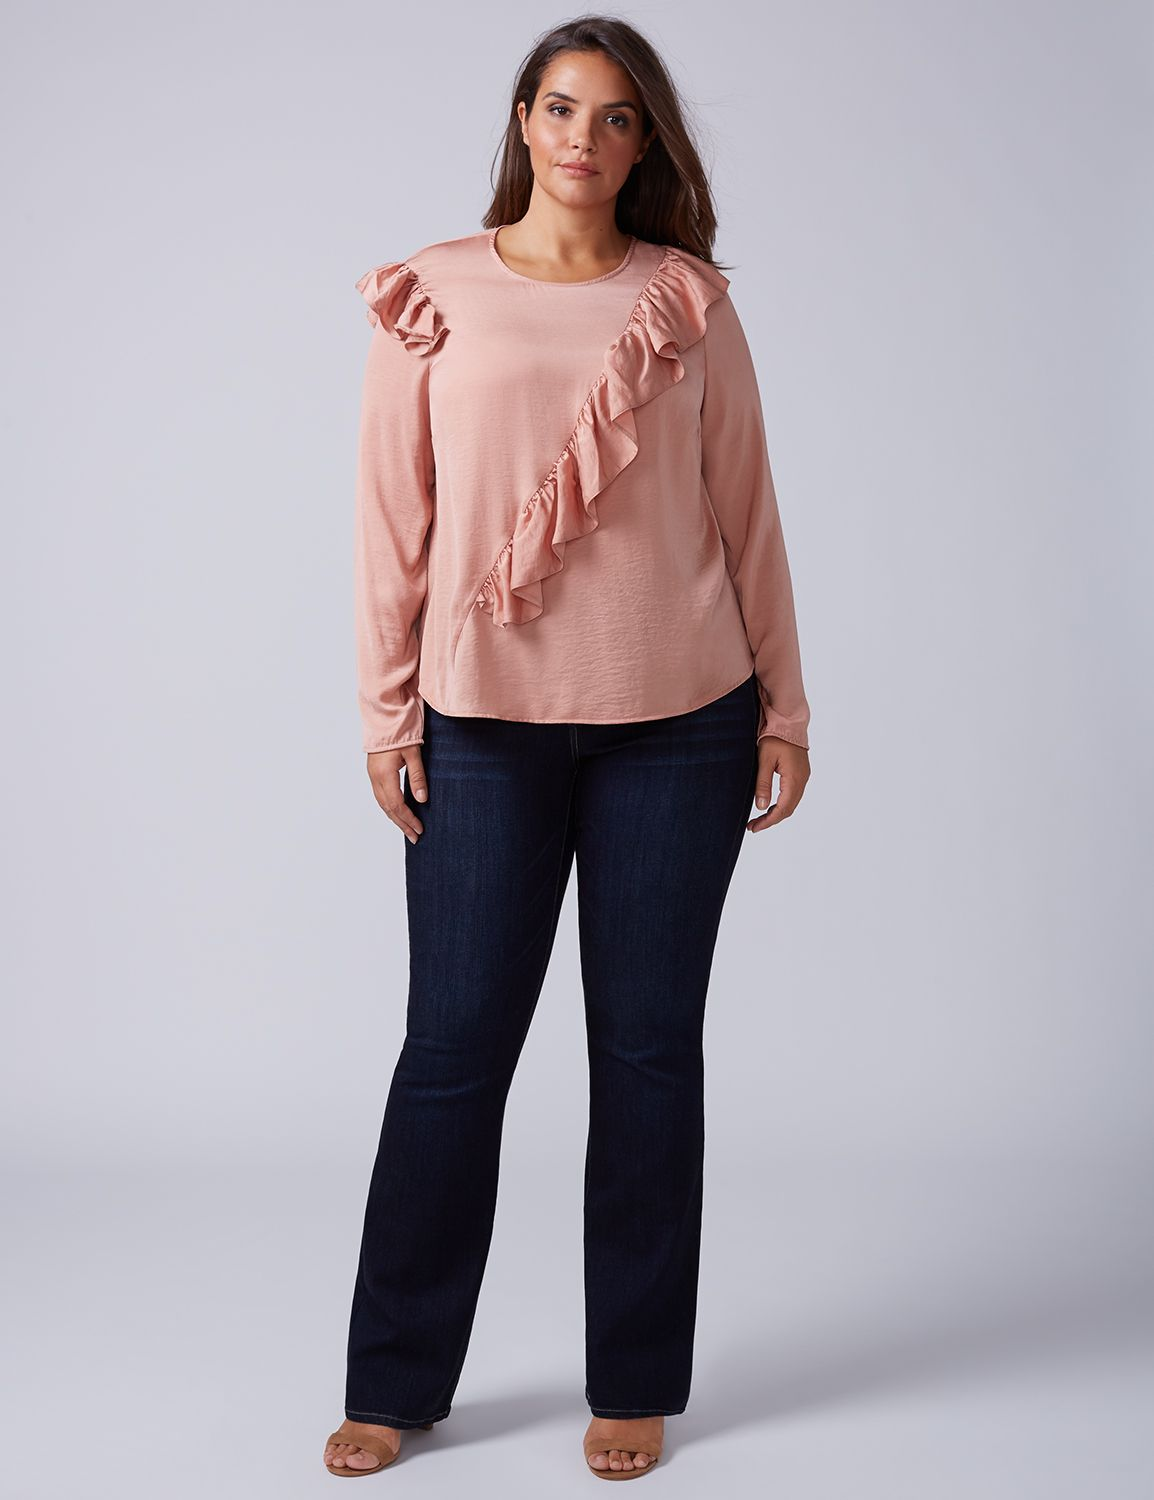 single women in bryants store Join me every week for more fashionable plus size clothing stores  to save the  day and got a lane bryant store credit card one day after a trip to the mall   this makes me sad that there are woman out there in the same boat as i am  when.